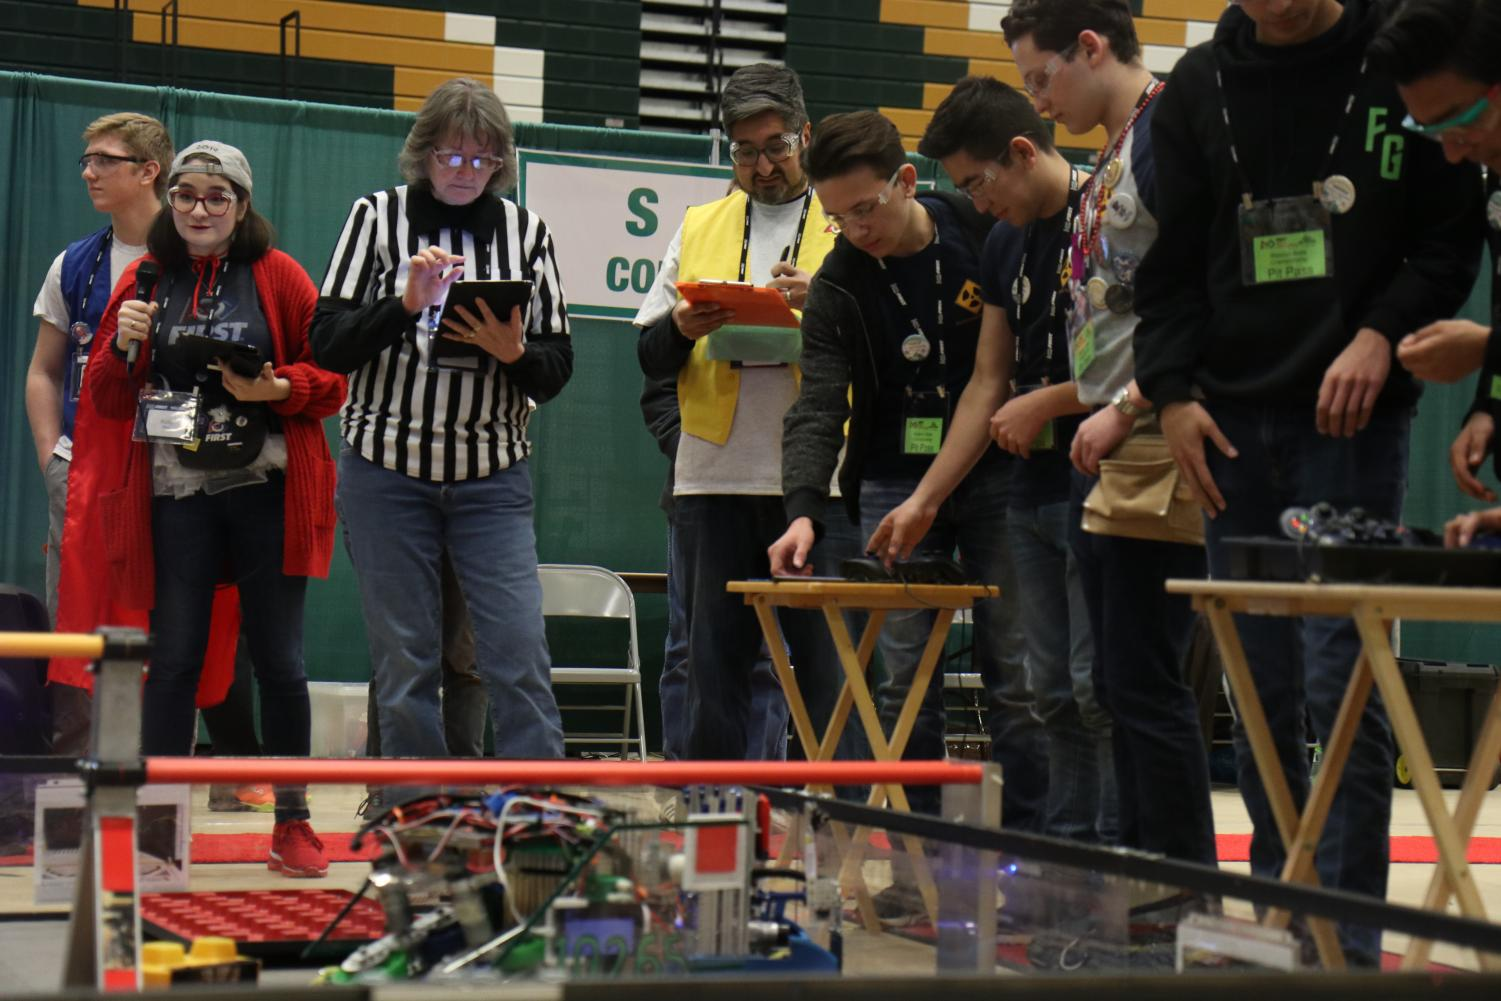 Baryons+members%2C+seniors+Adam+Cohen%2C+Shon+Sayfunddinov+and+Daniel+Vayman+prepare+the+robot+for+autonomous.+They+lost+the+match%2C+with+69-42+points.+Autonomous+is+the+period+when+the+robot+moves+by+itself+in+the+way+that+the+team+codes+it.+Sayfunddinov+drove+the+robot+because+it+is+a+tradition+for+seniors+to+drive.+%E2%80%9CI+think+driving+is+fun+and+interesting%2C%E2%80%9D+Sayfunddinov+said.+%E2%80%9CYou+definitely+feel+more+a+part+of+the+team+and+more+important.%E2%80%9D+